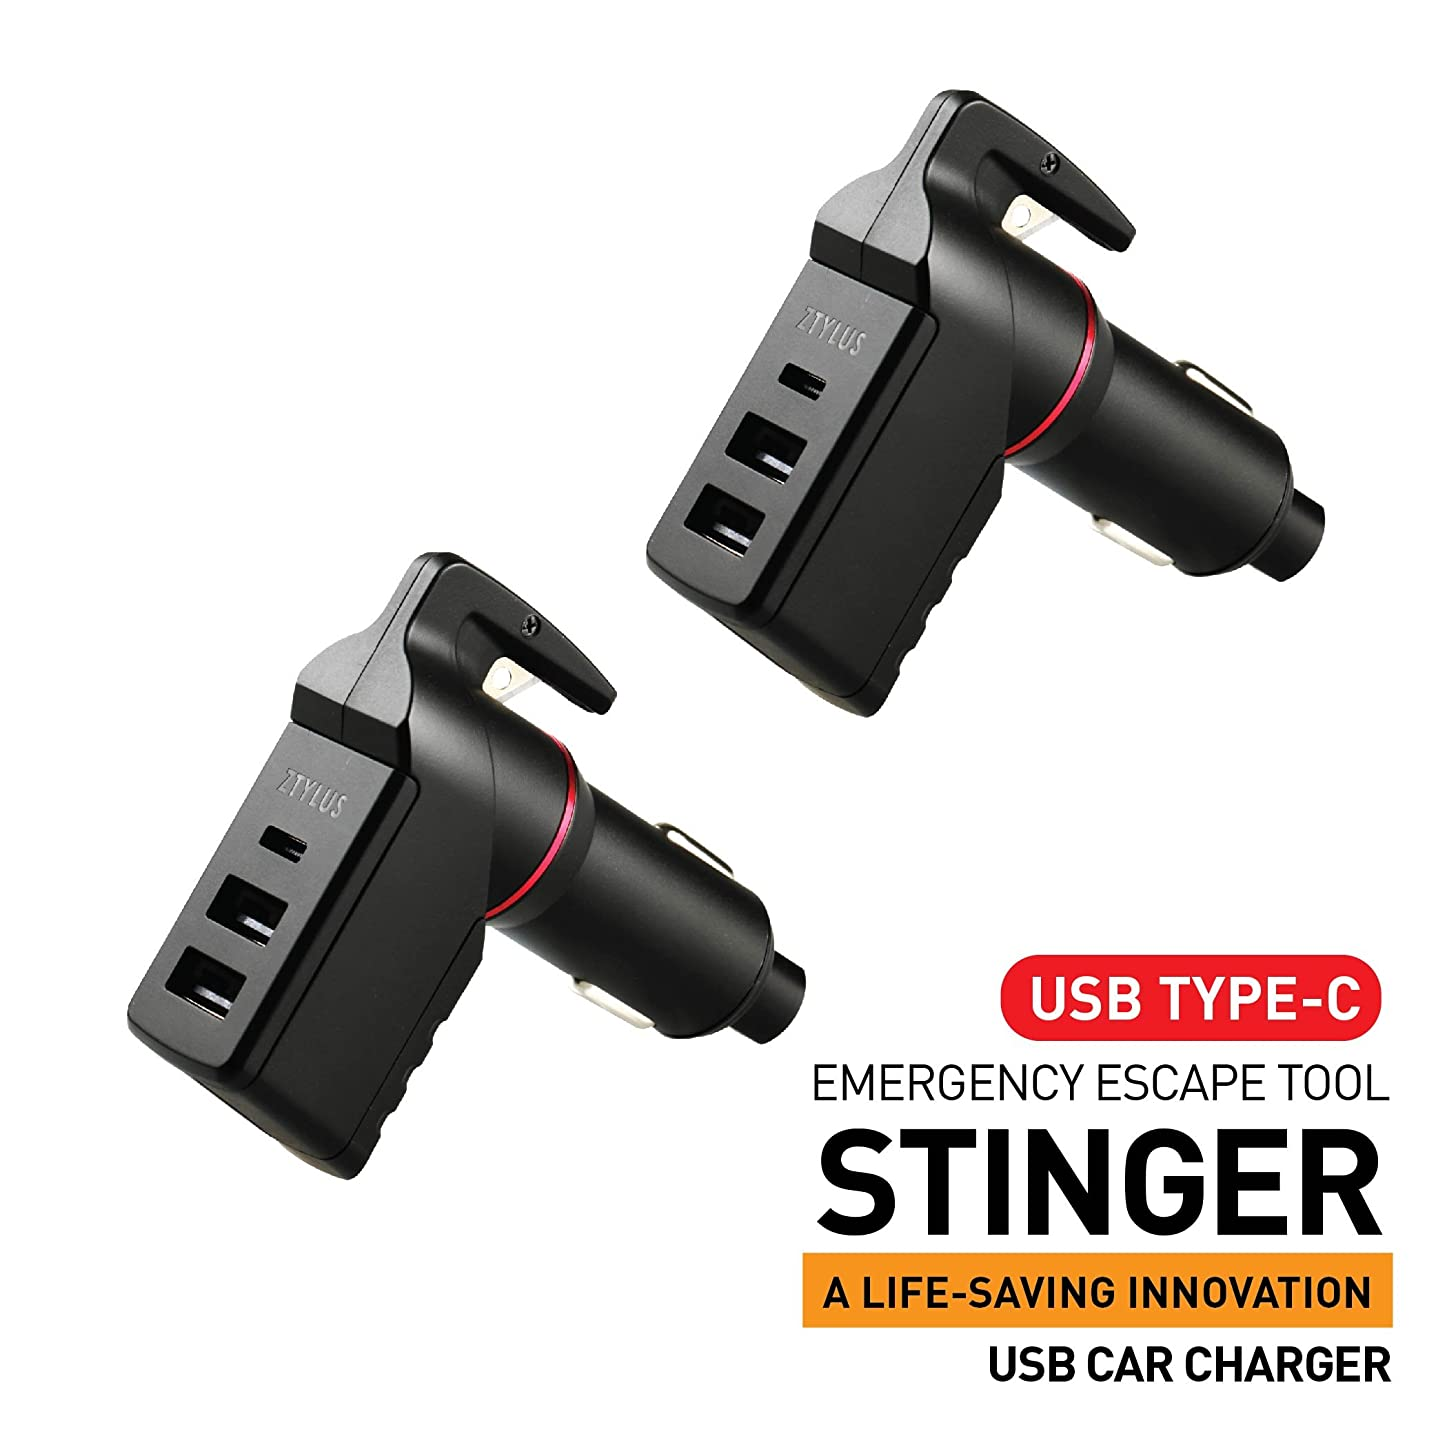 Ztylus Stinger USB Type C Car Charger Emergency Escape Tool: Spring Loaded Window Breaker Punch, Seat Belt Cutter, 1 USB-C Port + 2 USB-A Ports Cigarette Charger, 3.0A Max Output (2 pcs Black Pack)